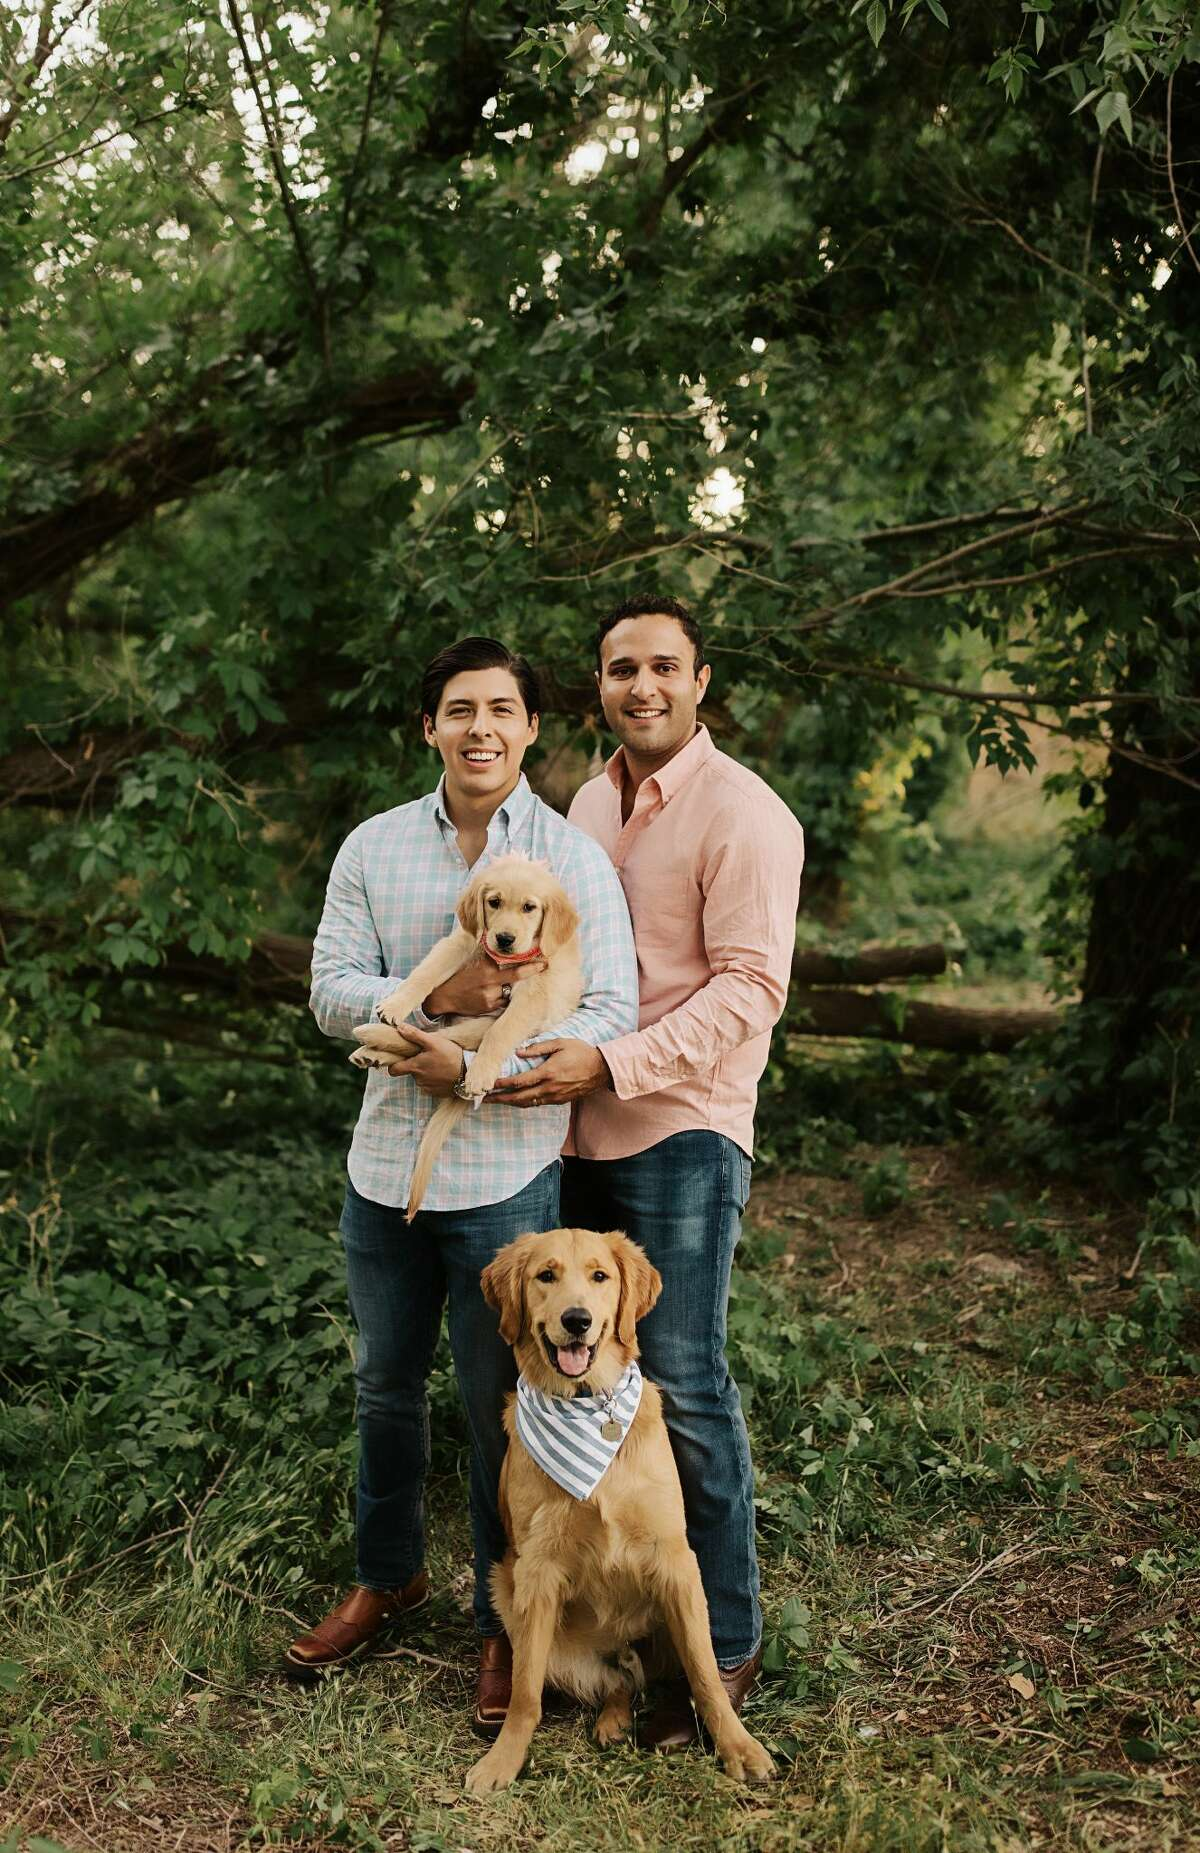 Alex (left) and Alexander (right) Mattey and their Golden Retrievers Lex and Lily